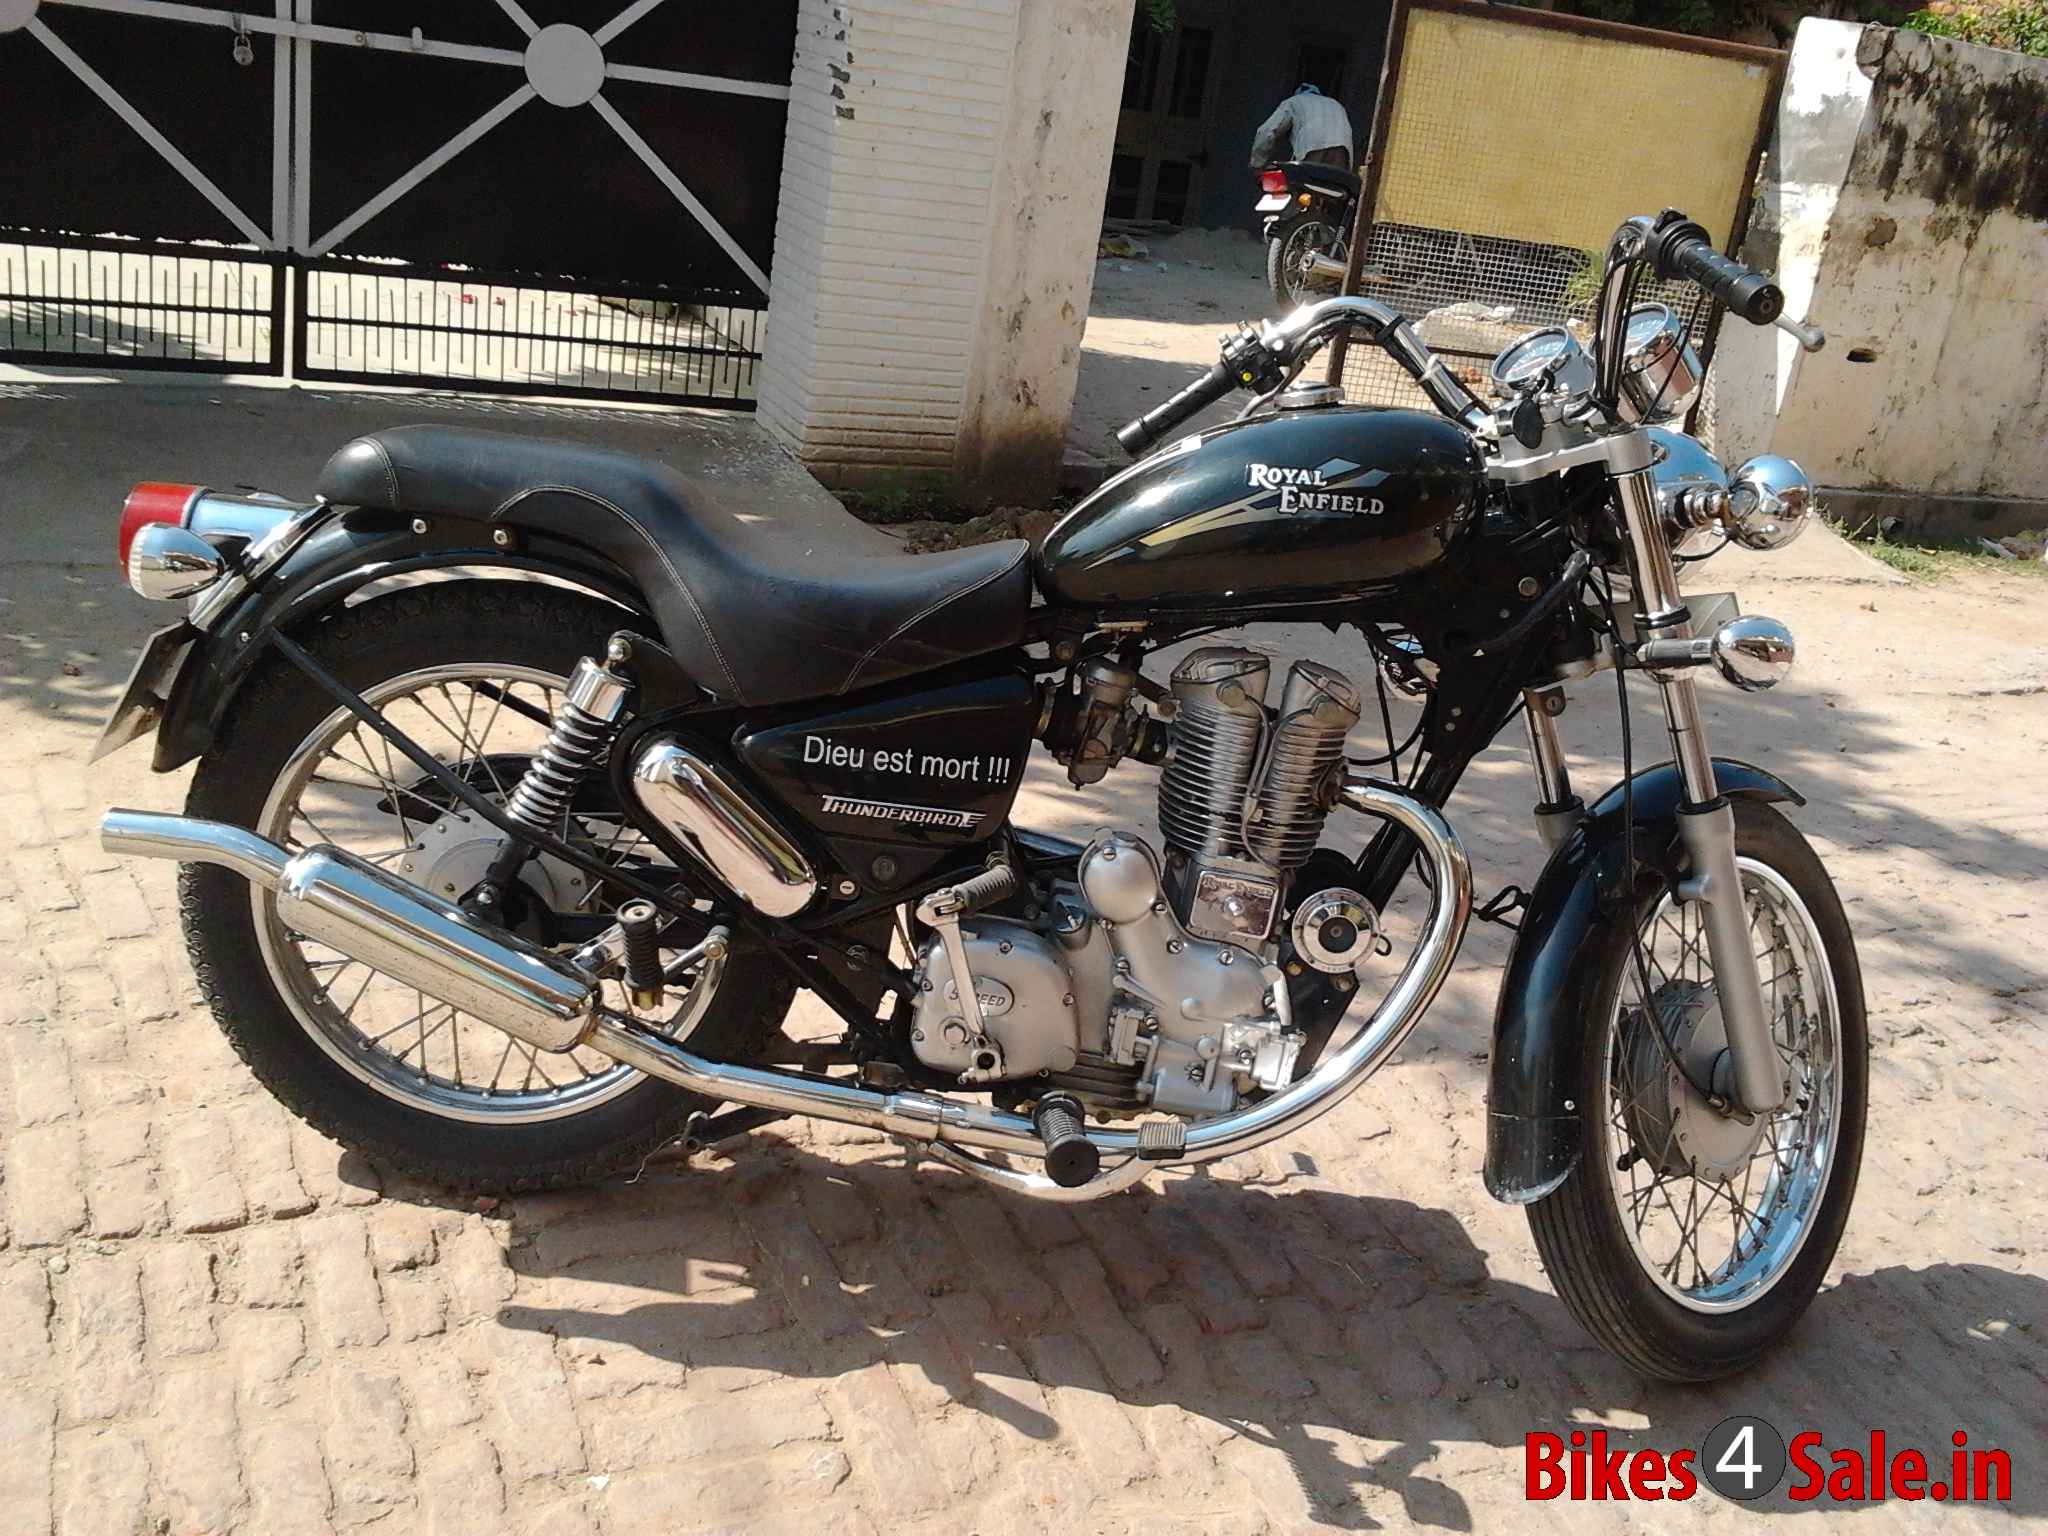 Royal Enfield Bullet 350 Classic 2007 images #123981